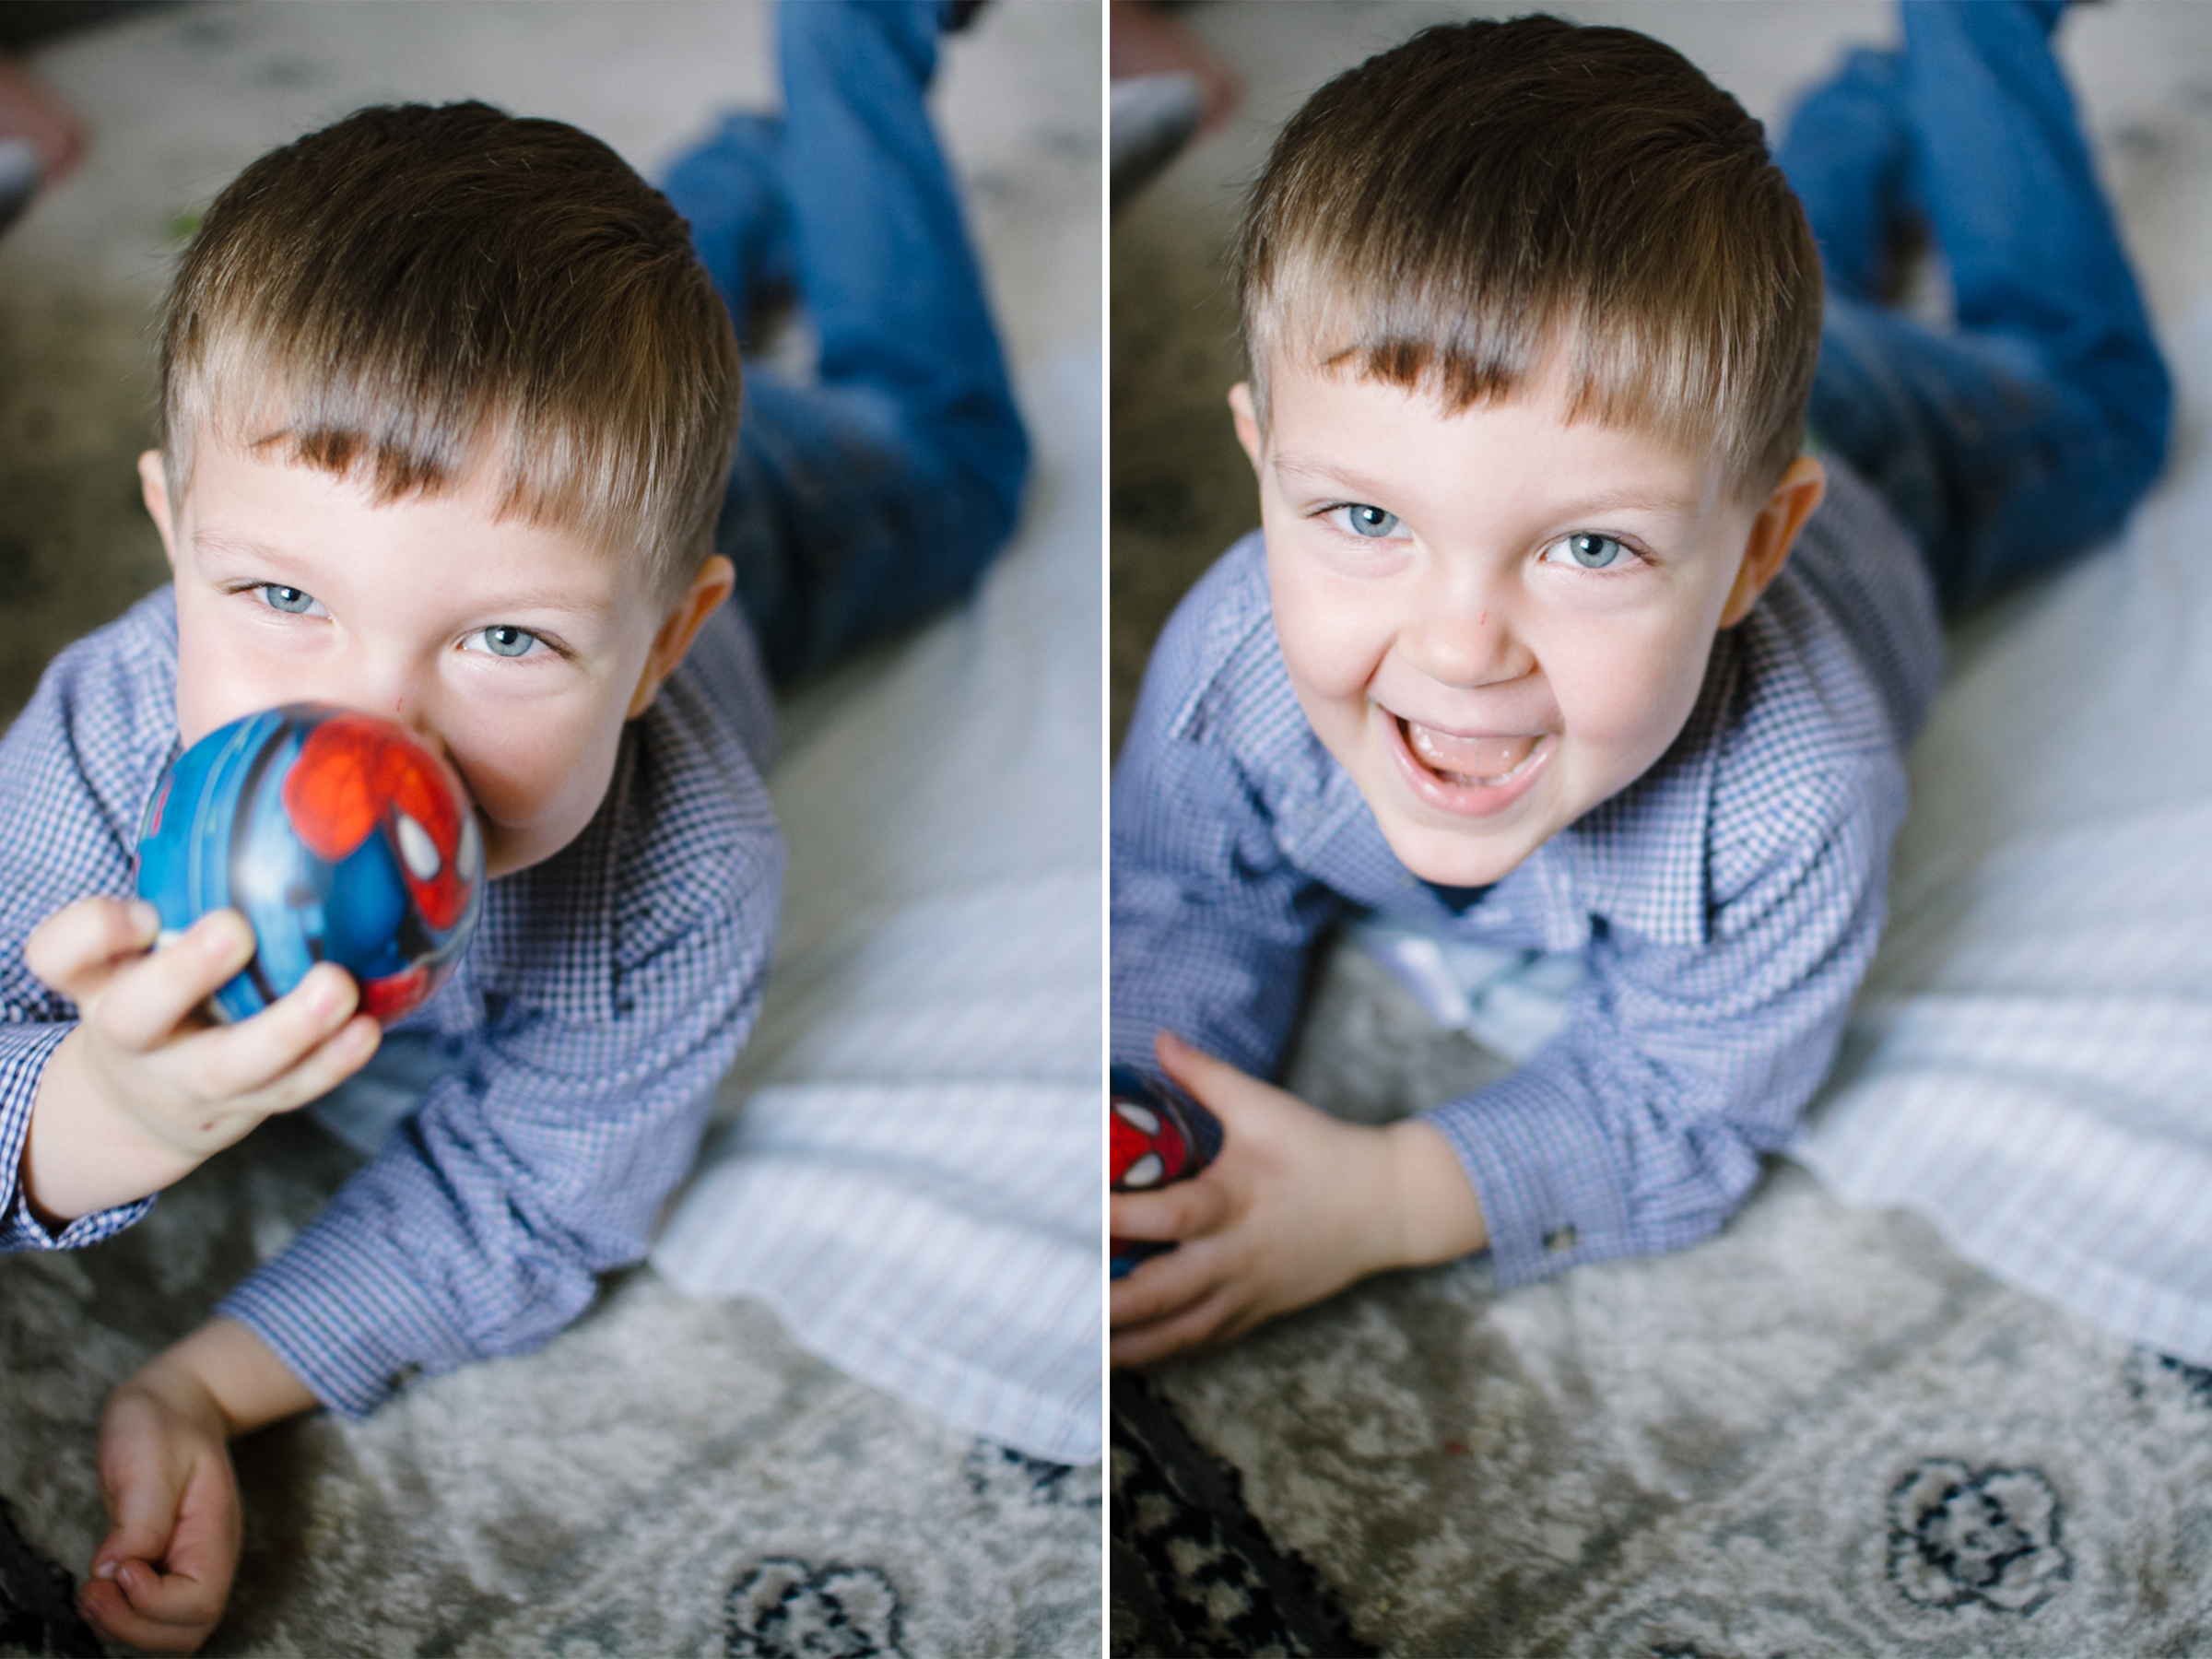 Josh-In Home Family Lifestyle Session-New Jersey-Olivia Christina Photo.jpg